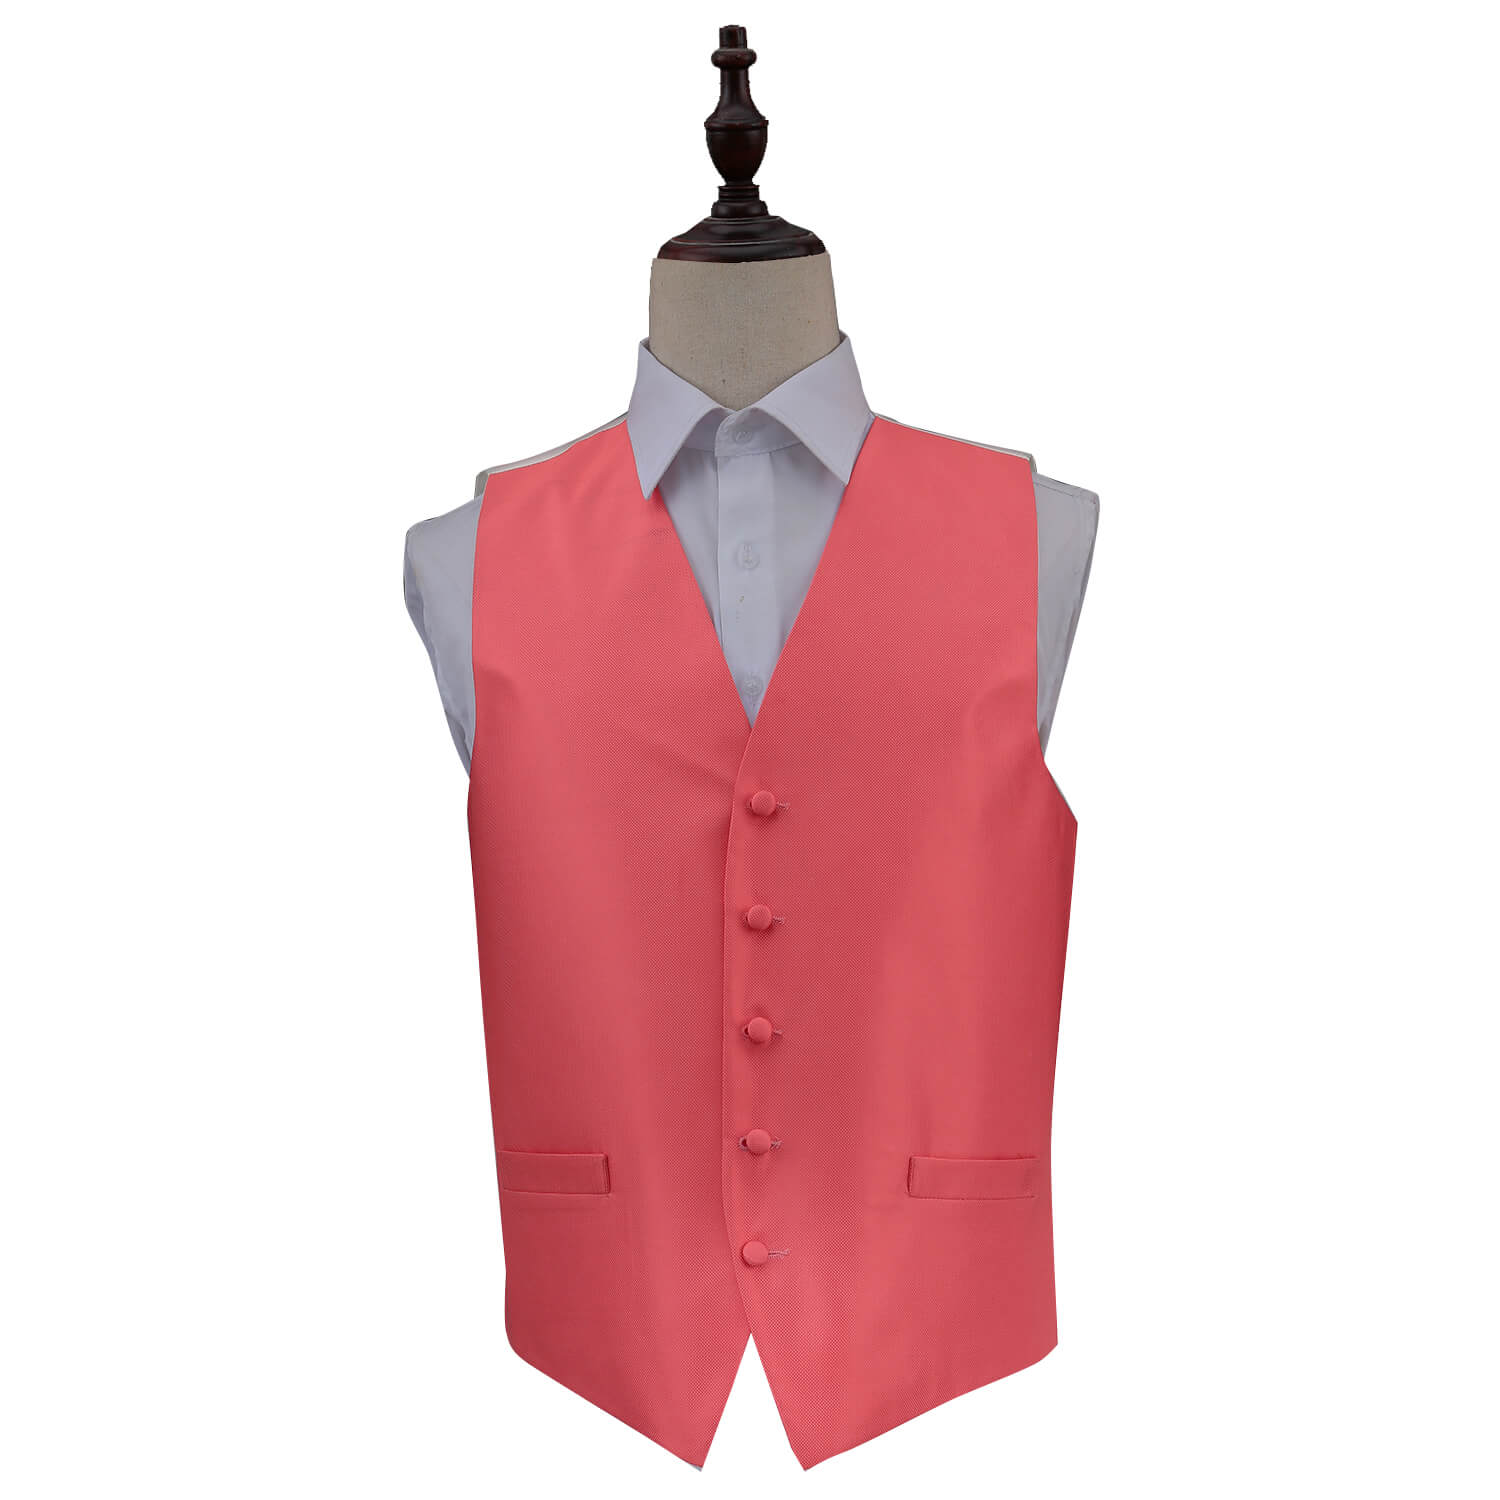 Solid Check Waistcoat - Coral, 44', Clothing & Accessories by Gifts24-7